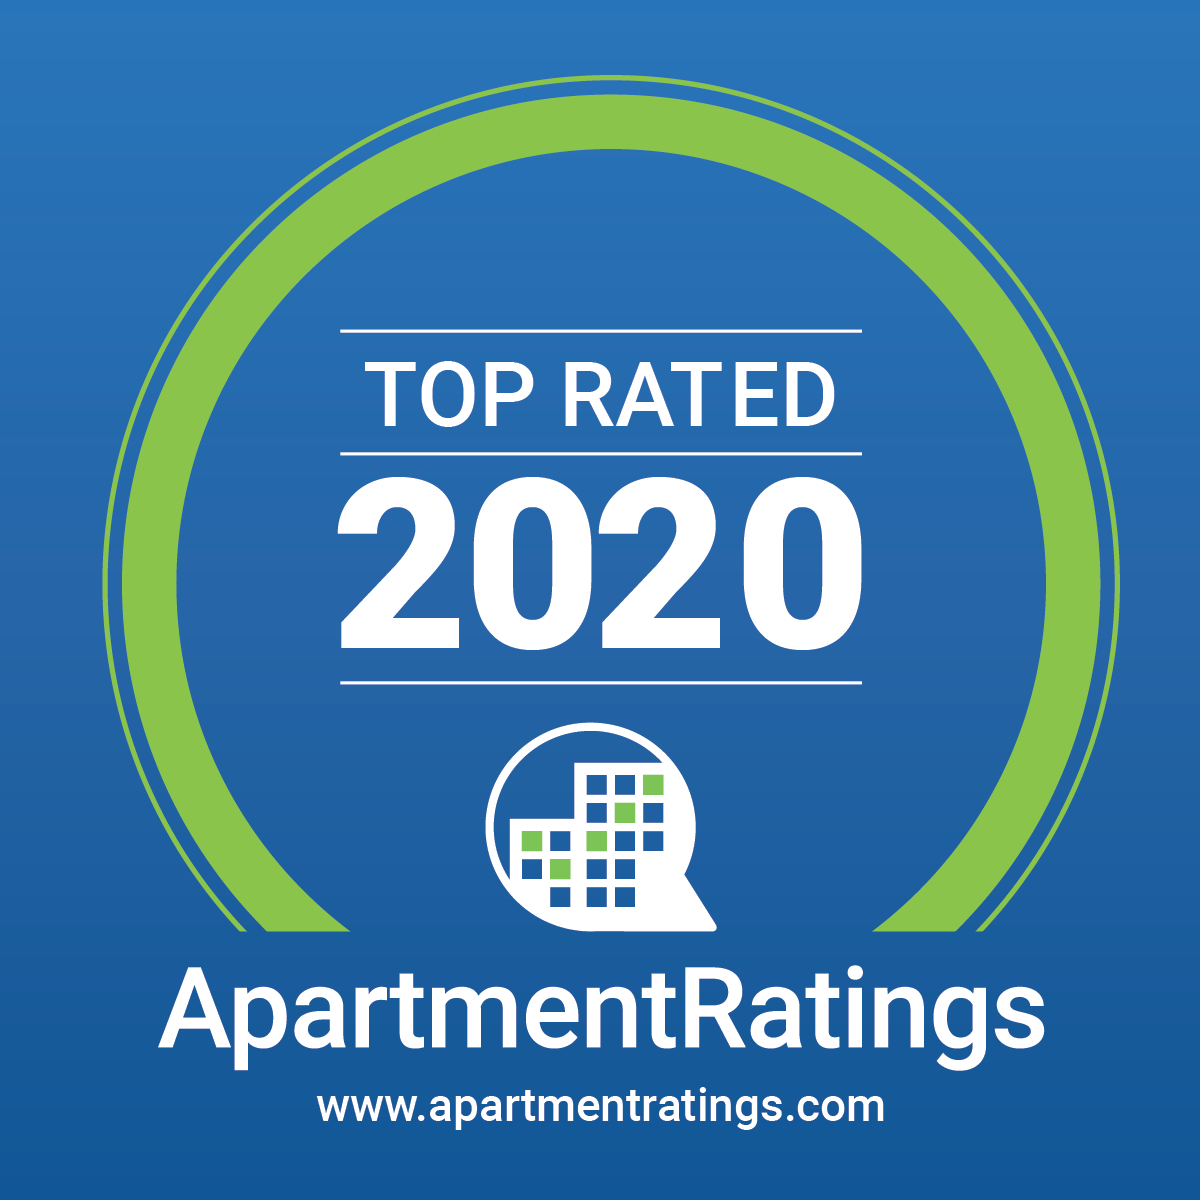 Top Rated 2020 Logo